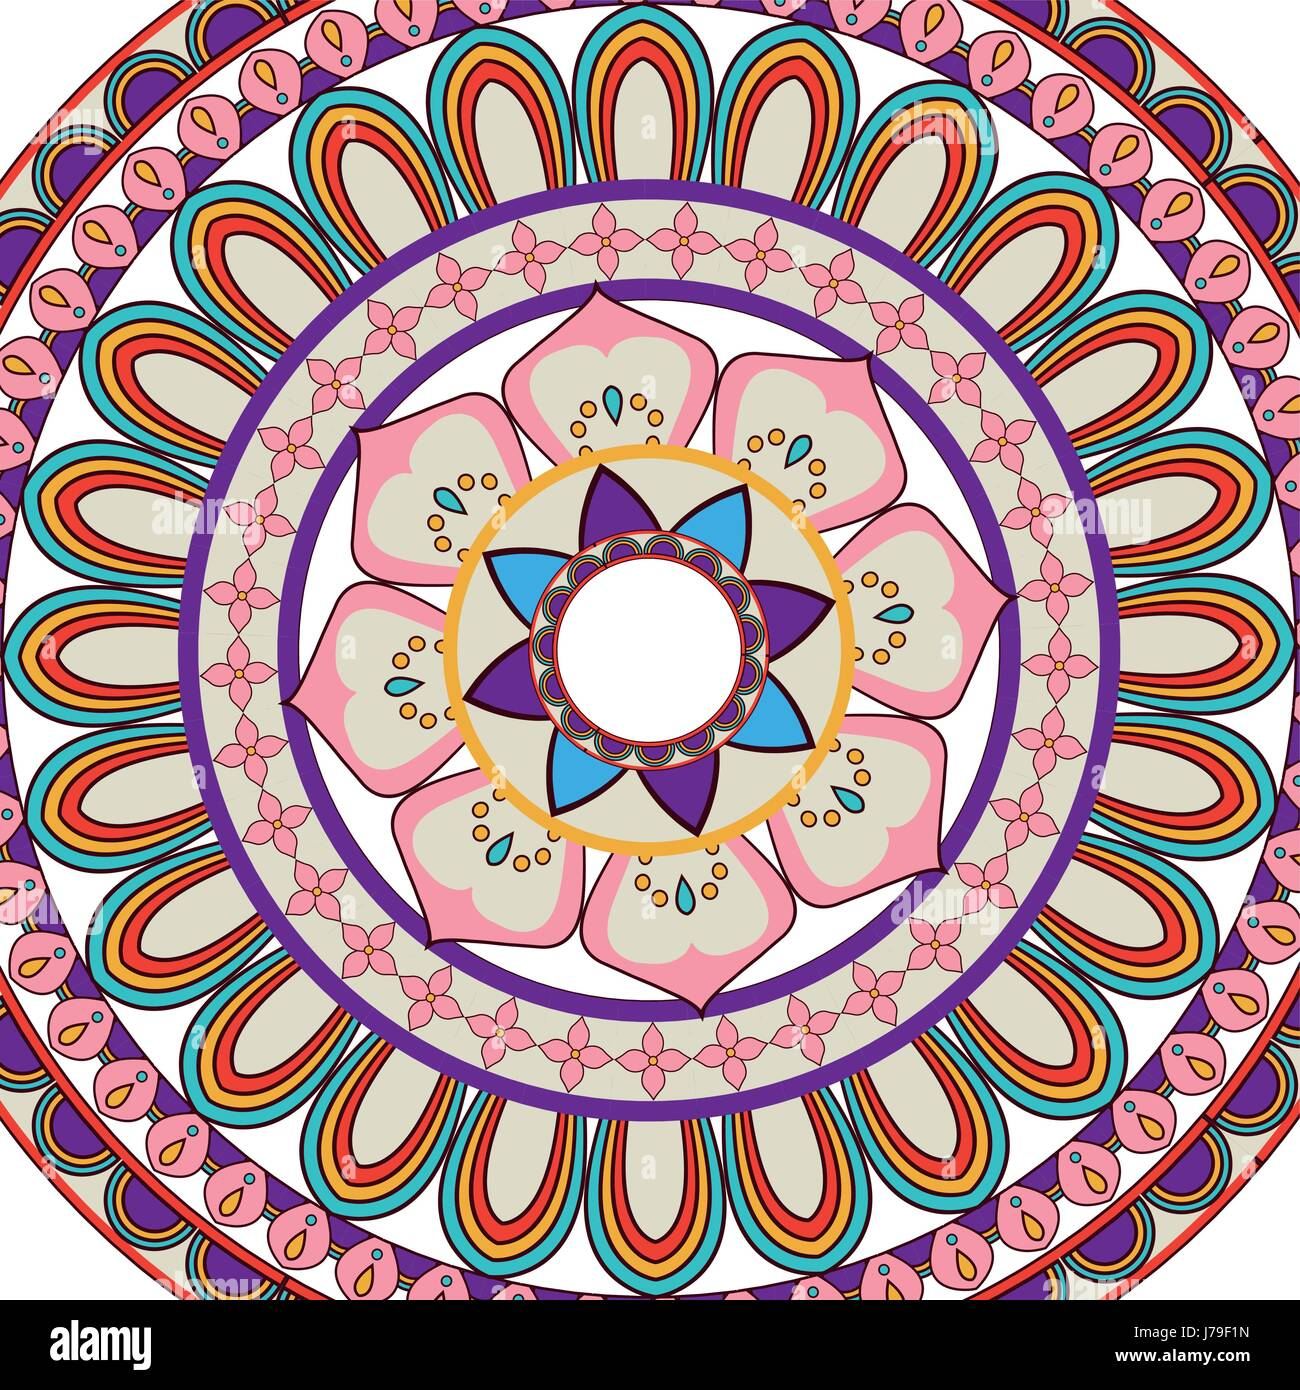 ornate abstract color mandala element. wallpaper, pattern fills, surface textures - Stock Image